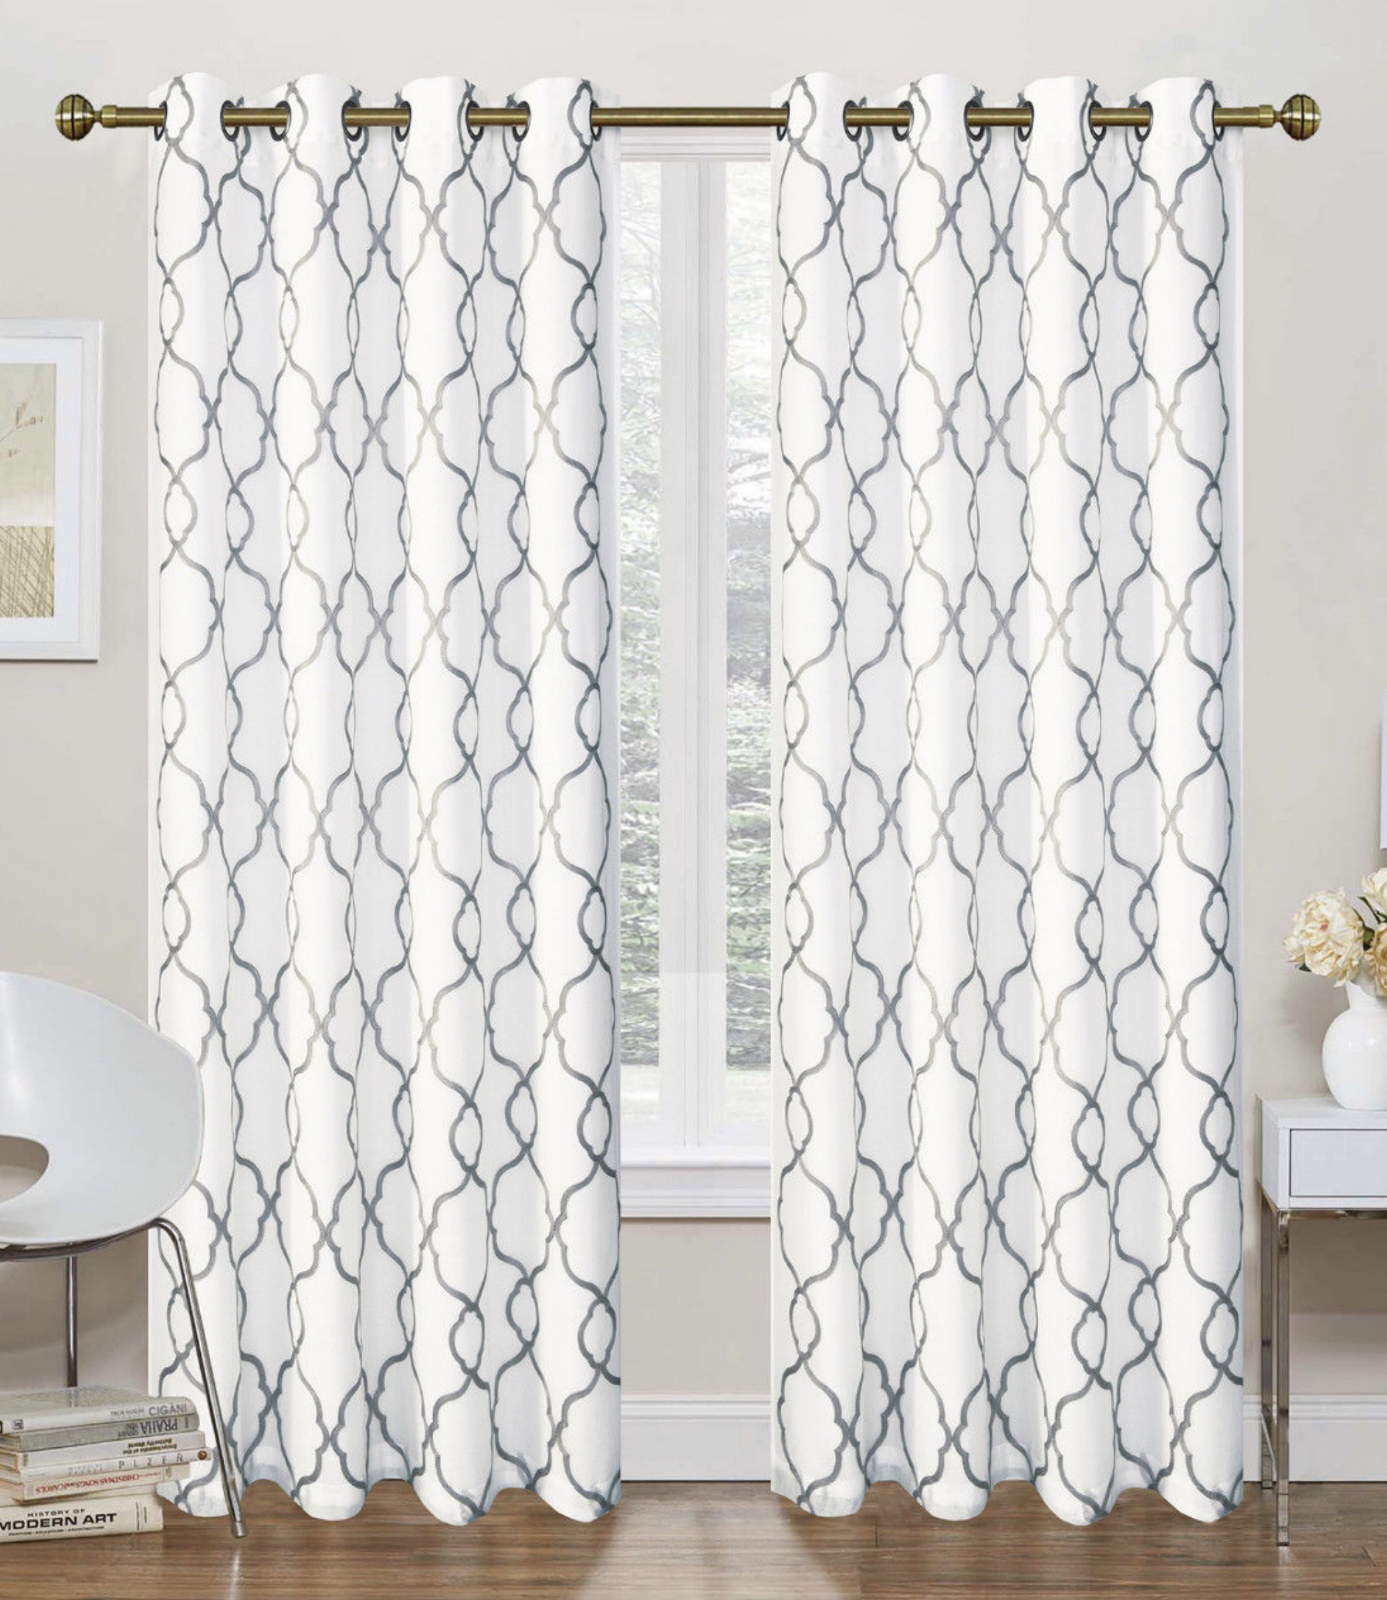 2 Pack: Geo Trellis Sheer Embroidered Grommet Curtains - Ass